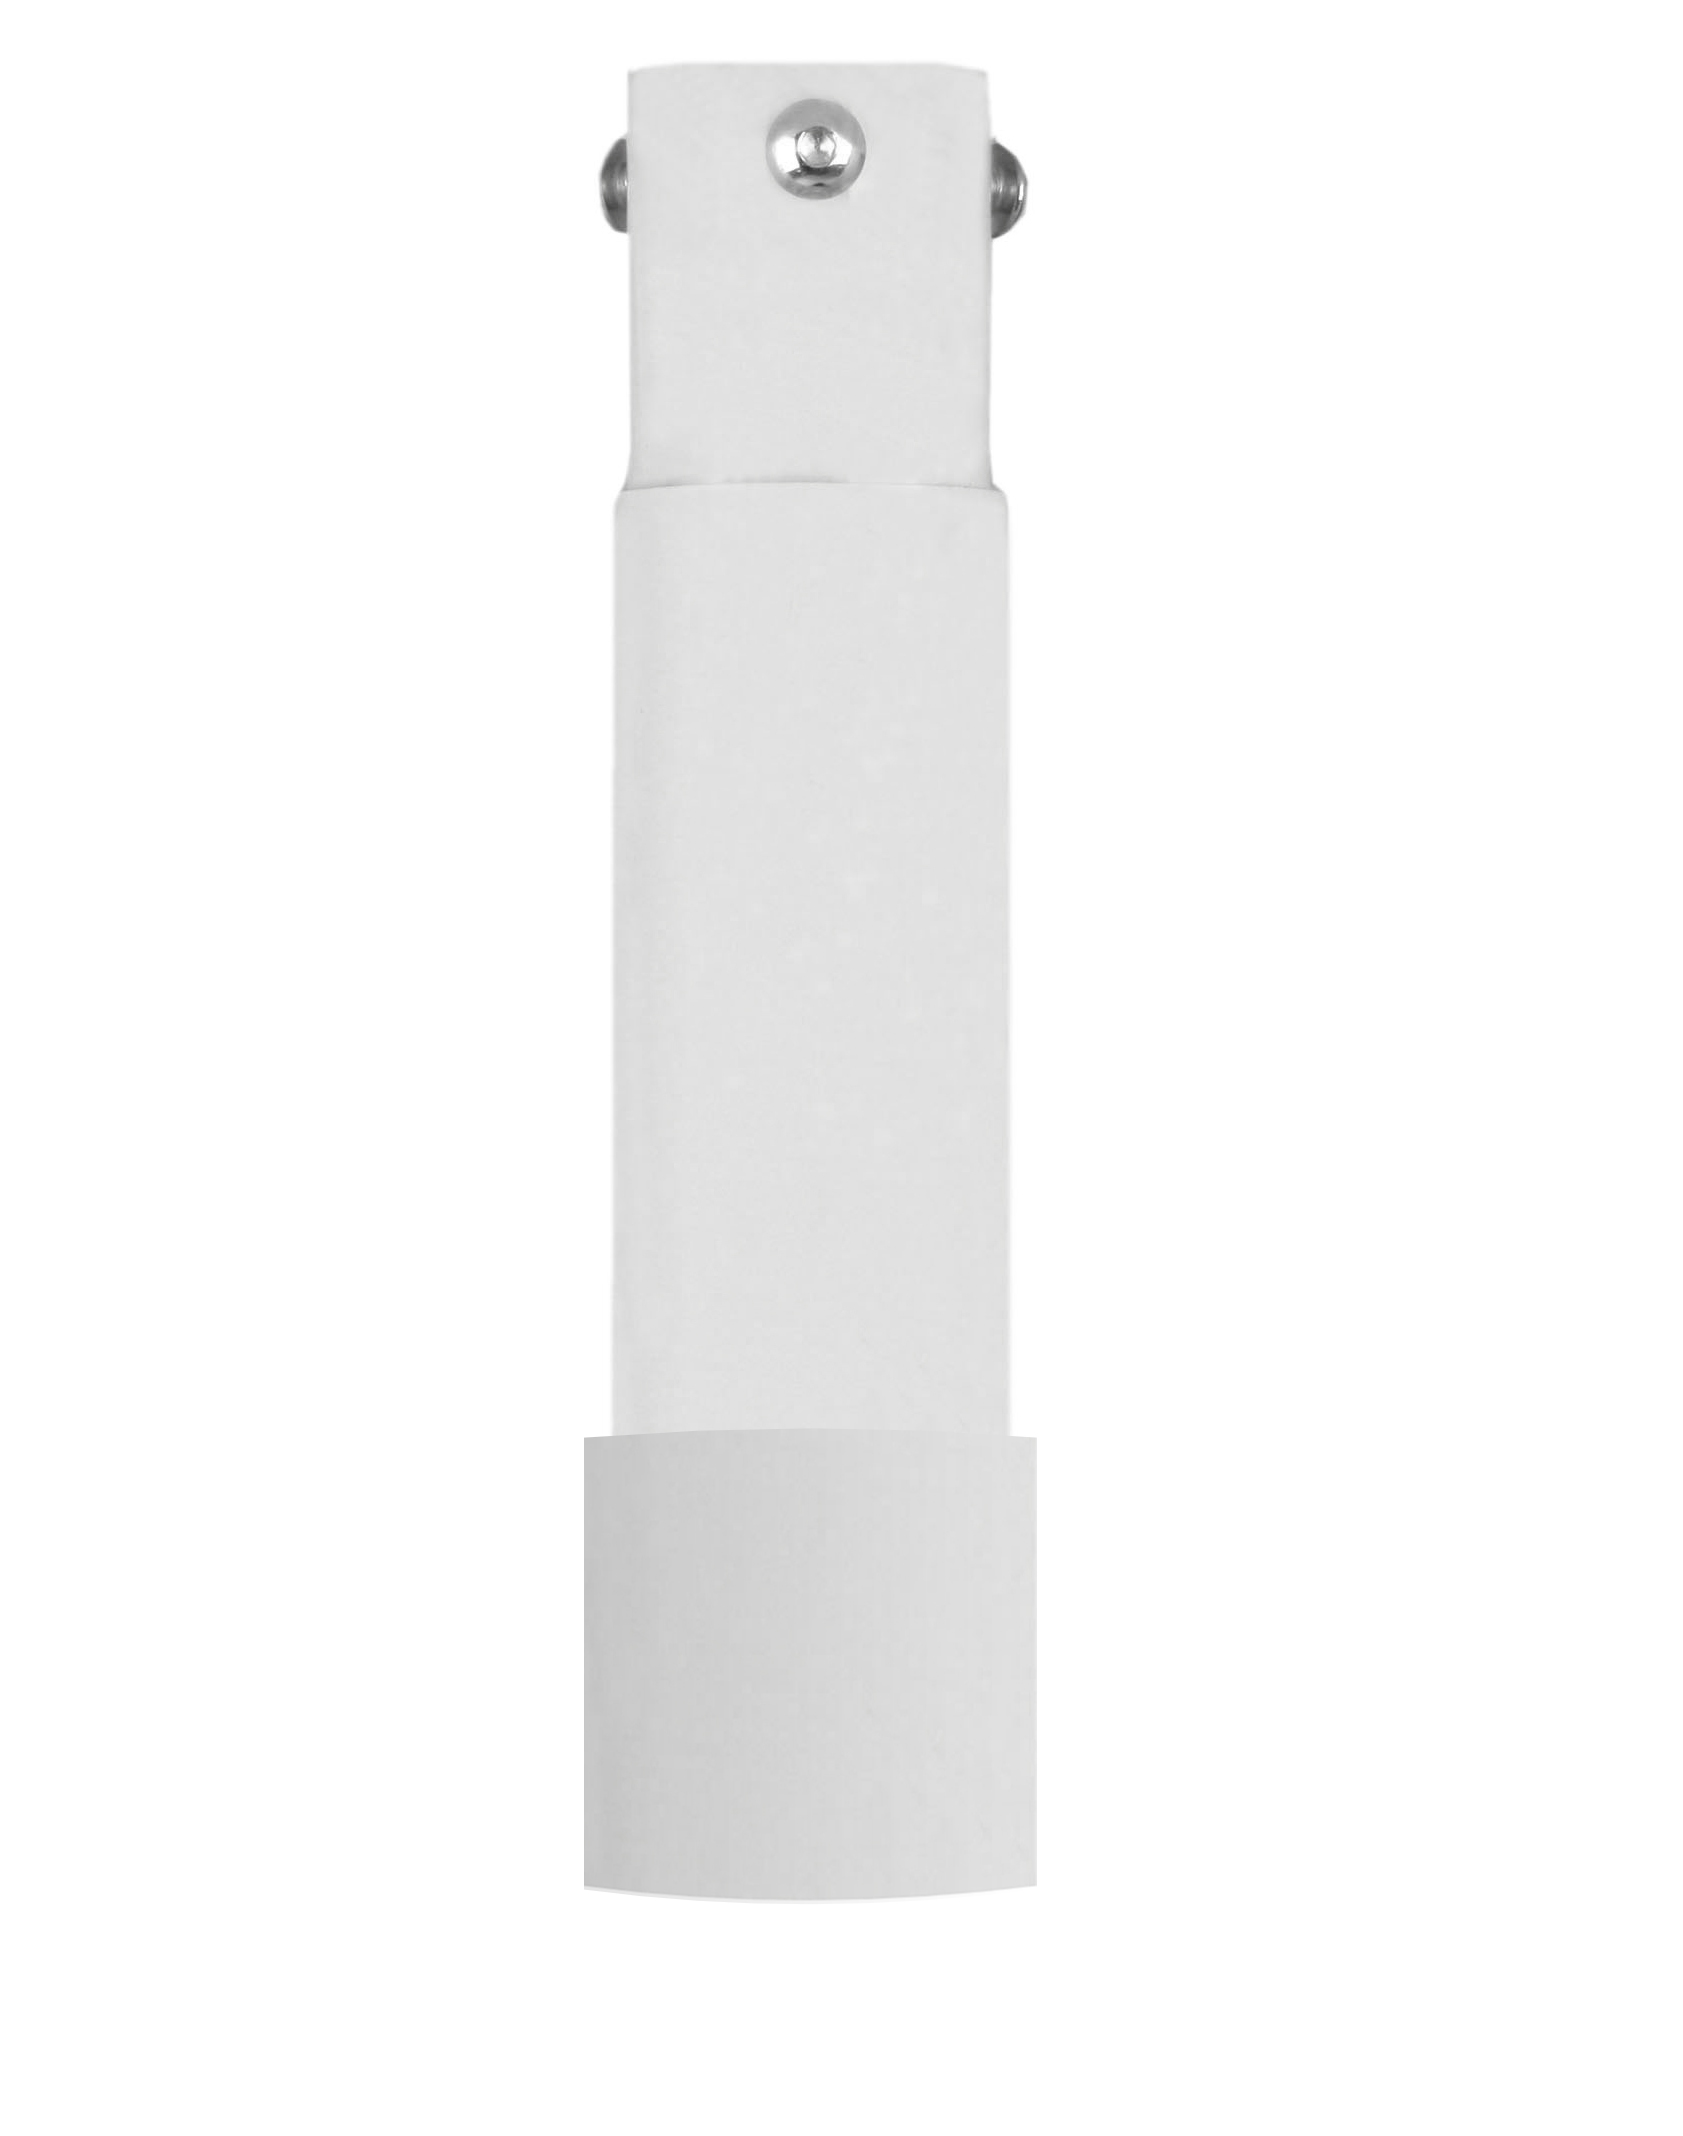 Honeywell Commercial Security Dome Wall Mount Norbain H4d3prv3 Internal Pendant Adaptor For Vp Pm Vk2 Ptz Domes Ral 7035